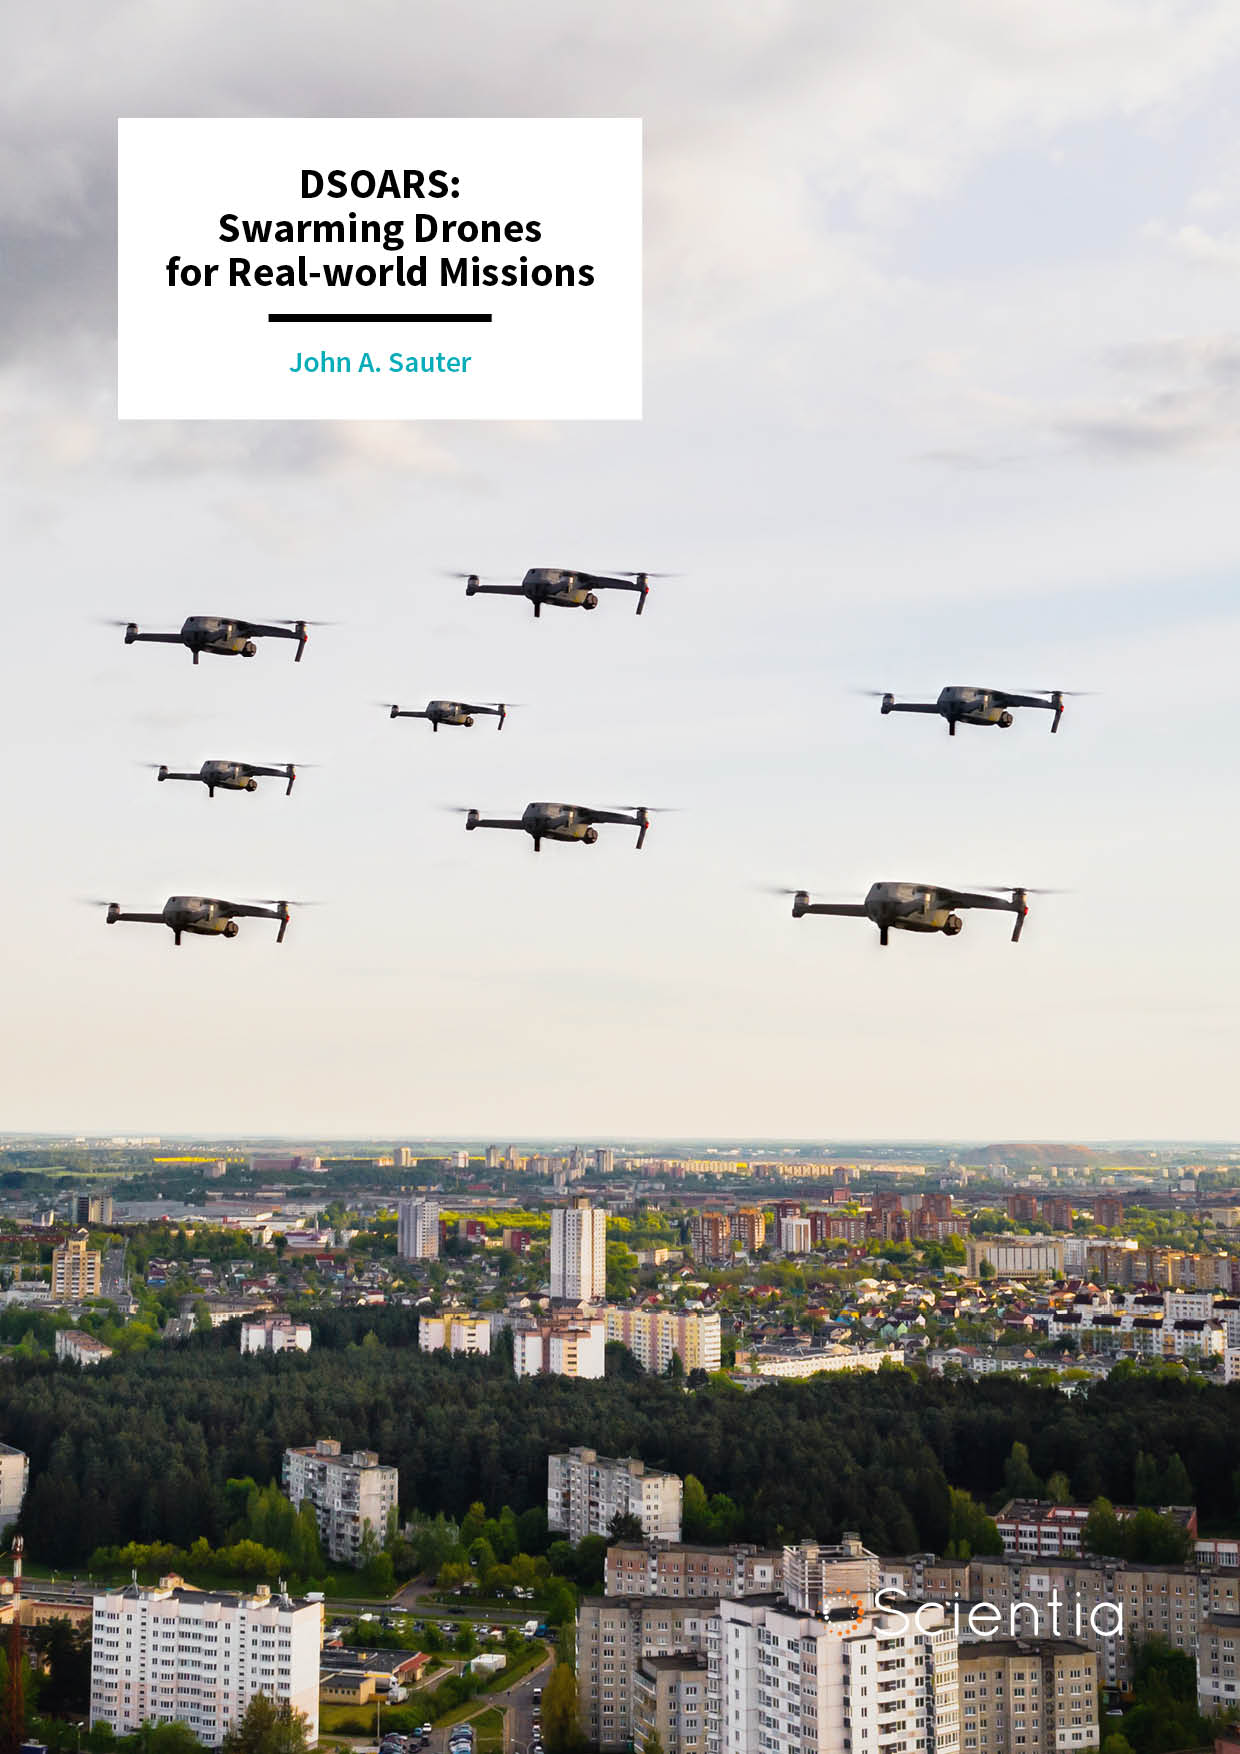 John Sauter – DSOARS: Swarming Drones for Real-world Missions